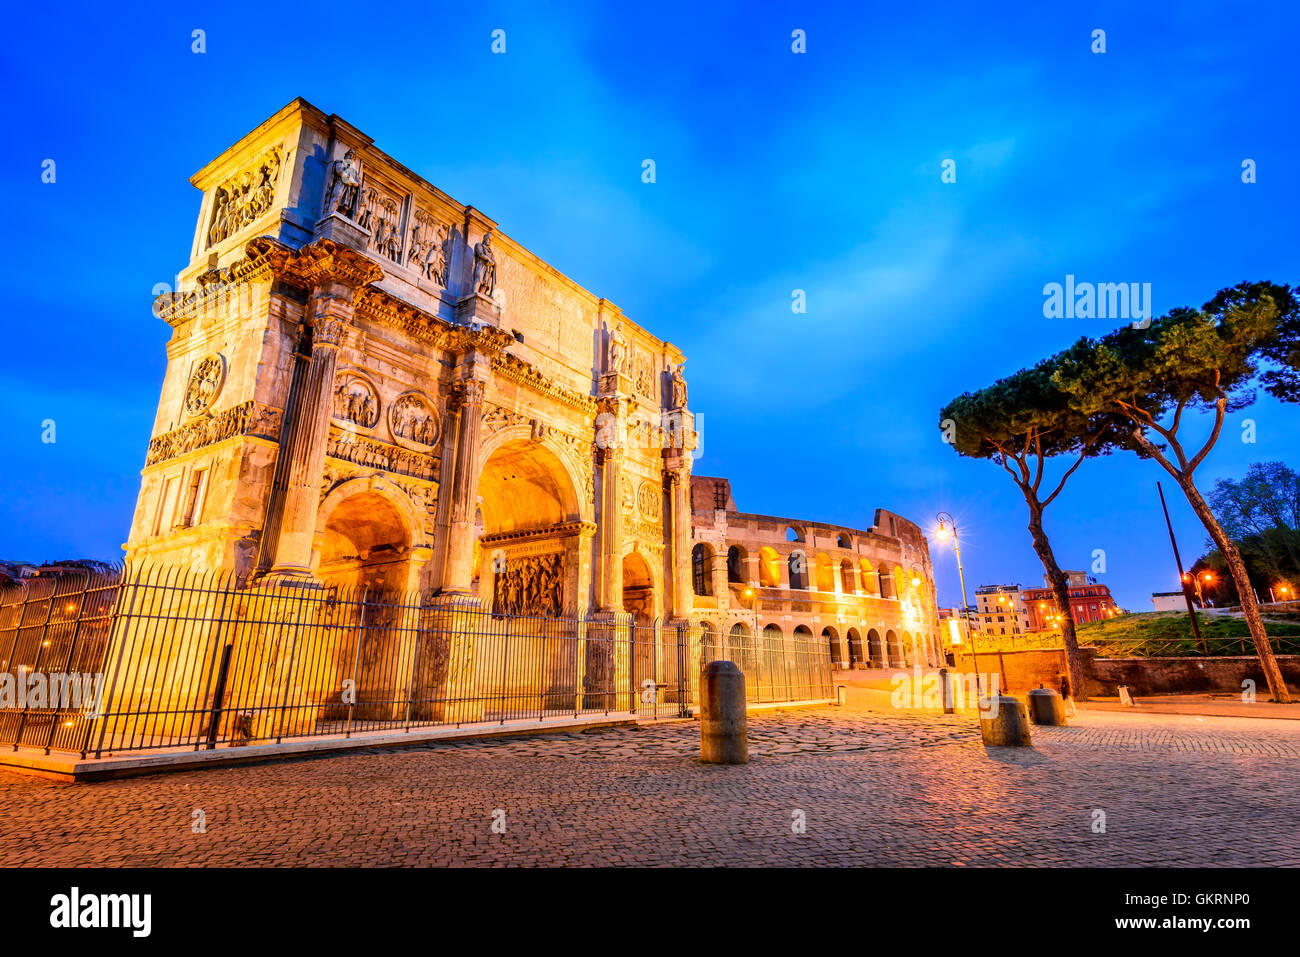 Rome, Italy. Arch of Constantine, commemorate emperor victory over Maxentius in 312AD, Roman Empire civil war. Stock Photo